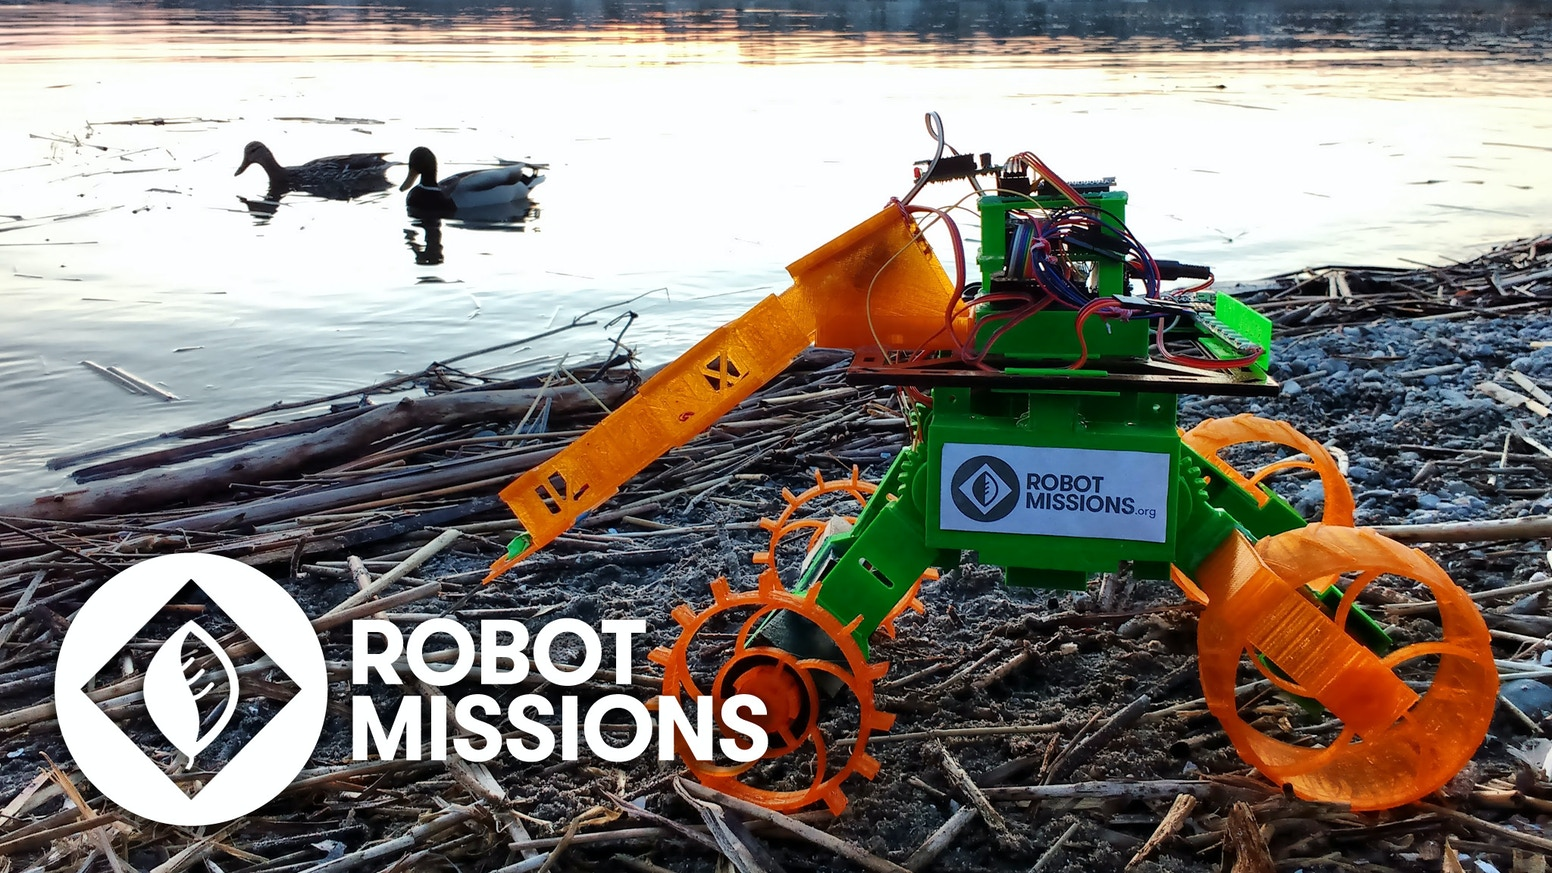 Makers embarking on a mission to collect debris from shorelines using a robot — faster & reaching remote locations